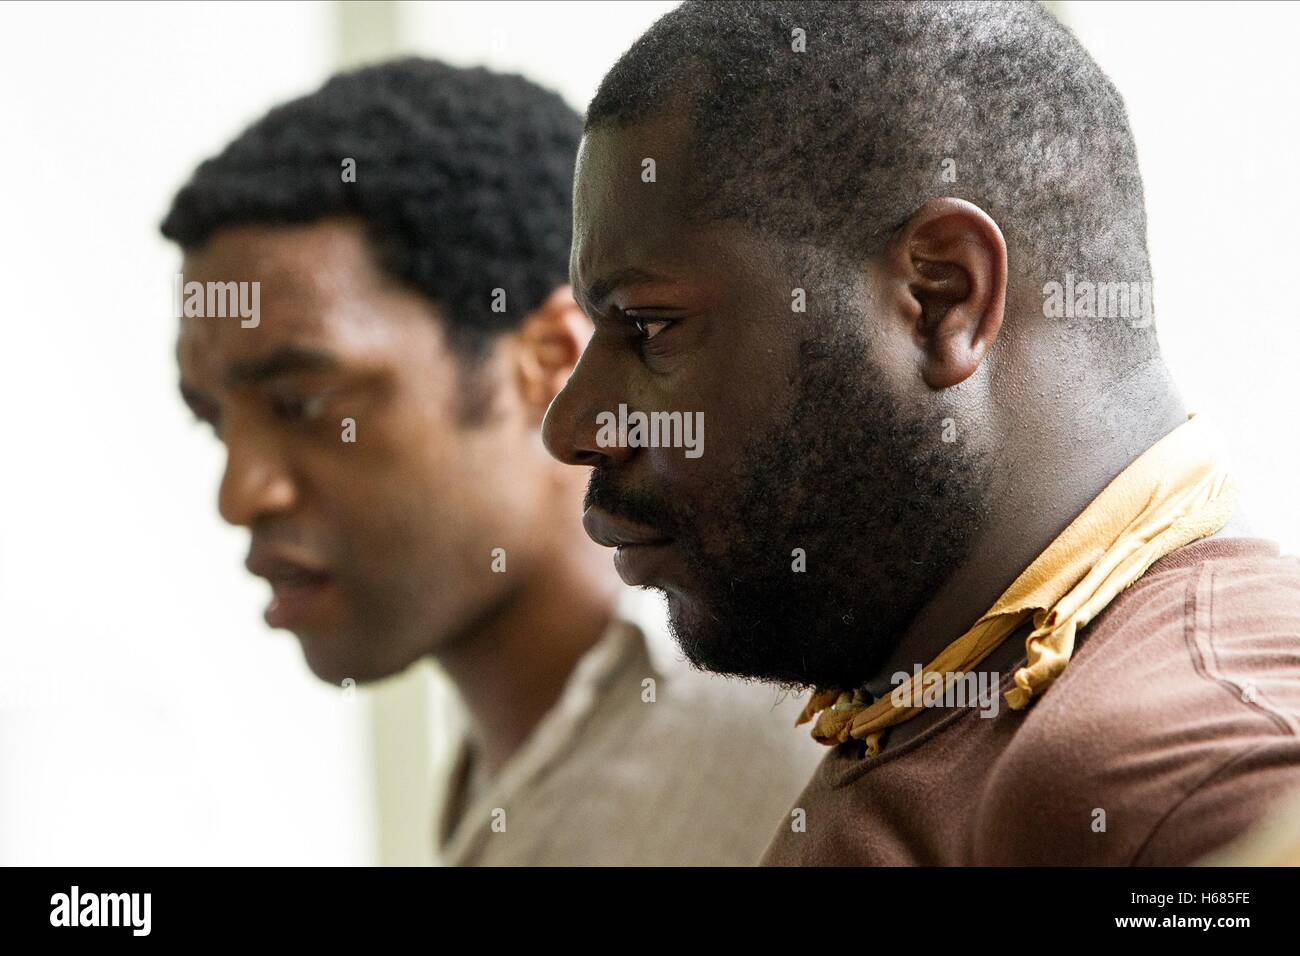 Chiwetel Ejiofor Steve Mcqueen 12 Years A Slave 2013 Stock Photo Alamy